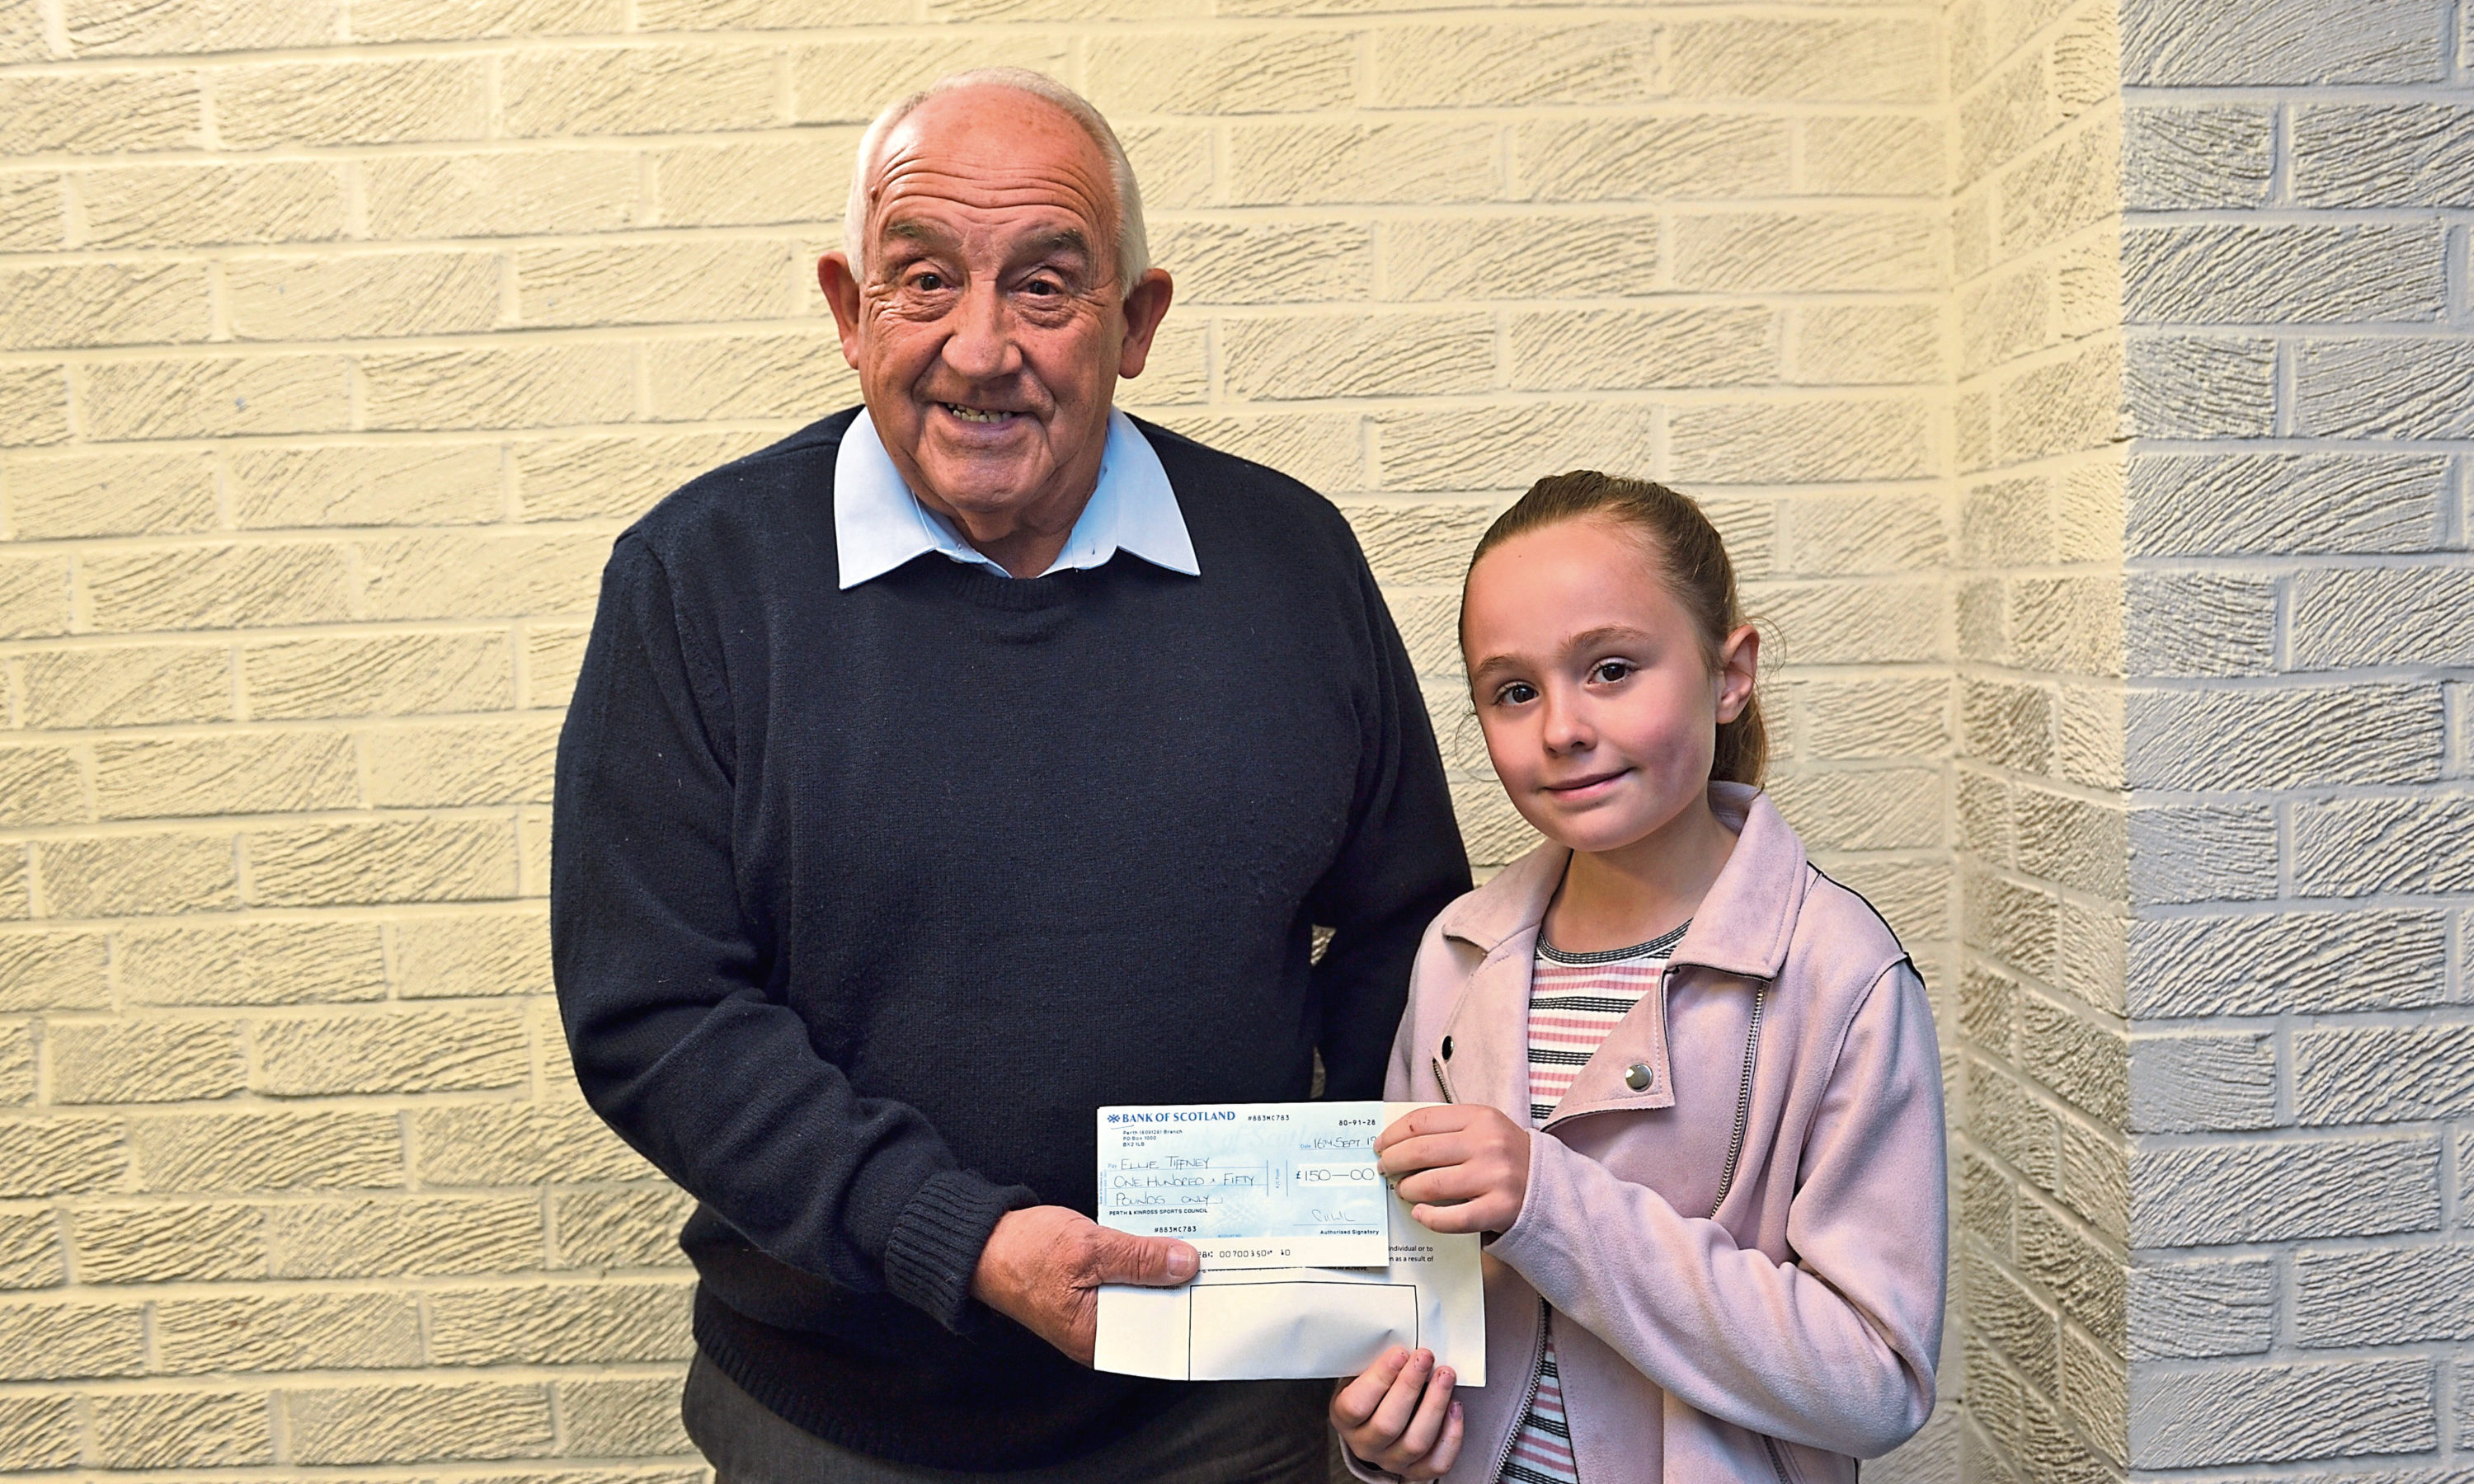 David Taylor, of Perth and Kinross Sports Council. presenting a £150 grant to dancer Ellie Tiffney.